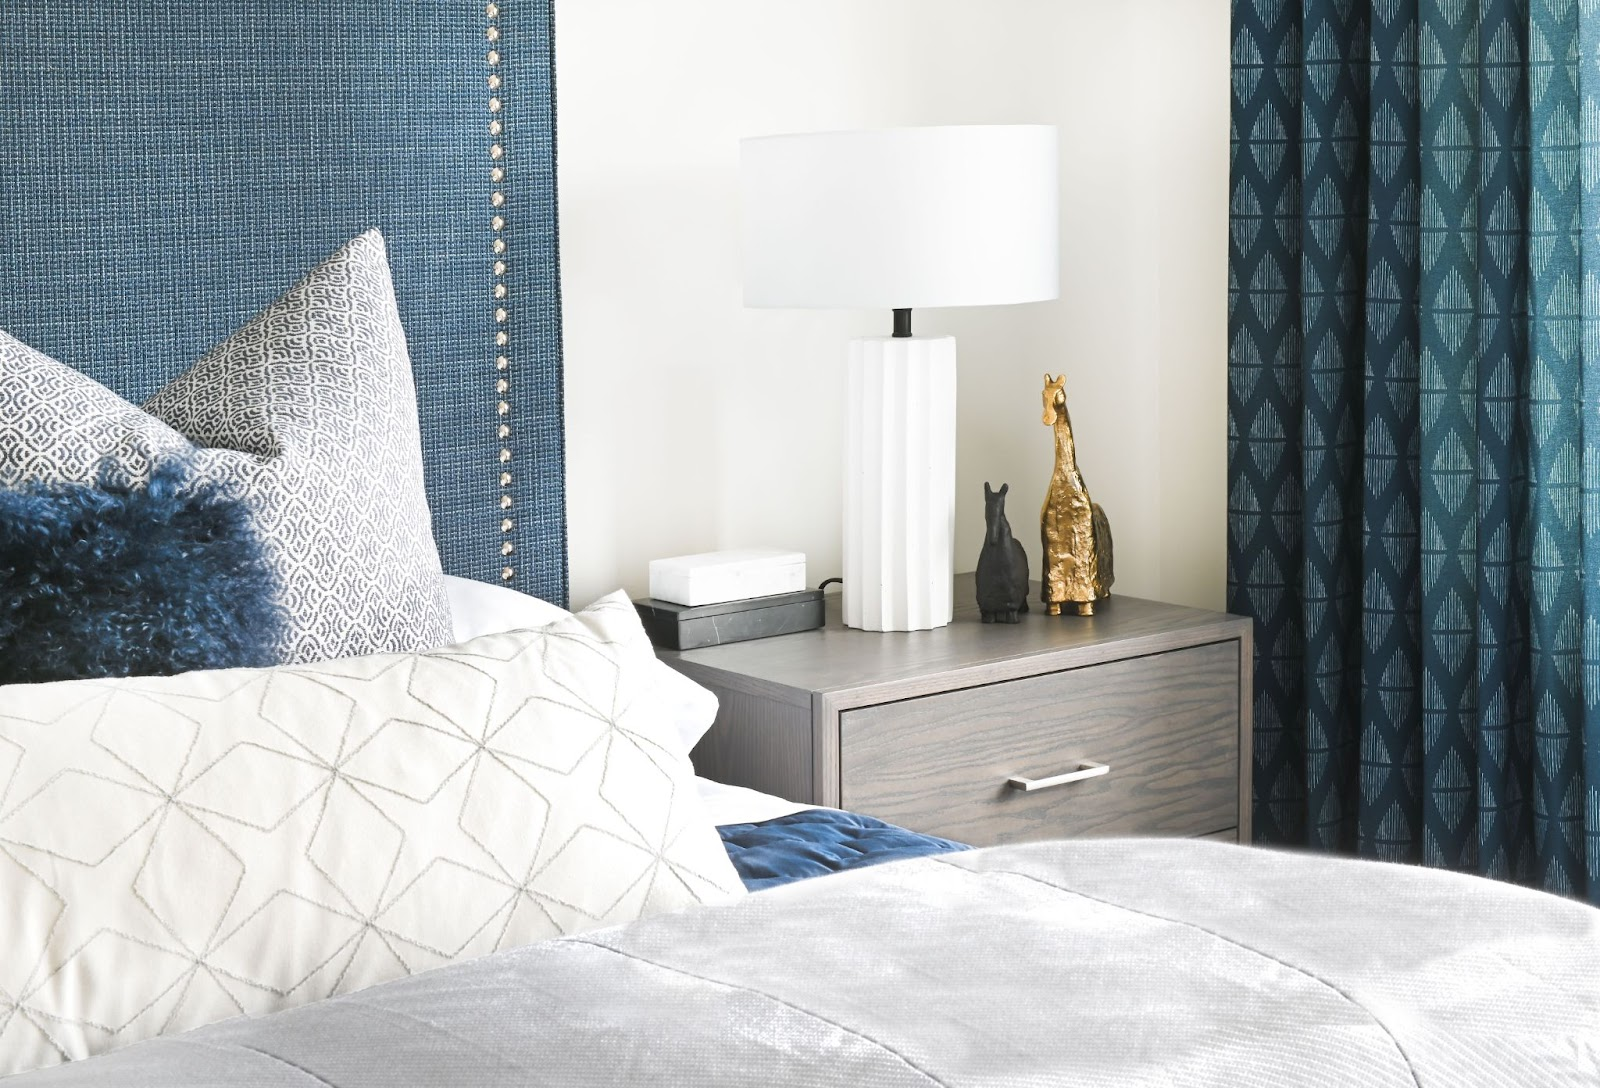 maria-decotiis-west-vancouver-ca-invest-in-interior-designer-designer-bedroom-with-blues-headboard-matching-drapes